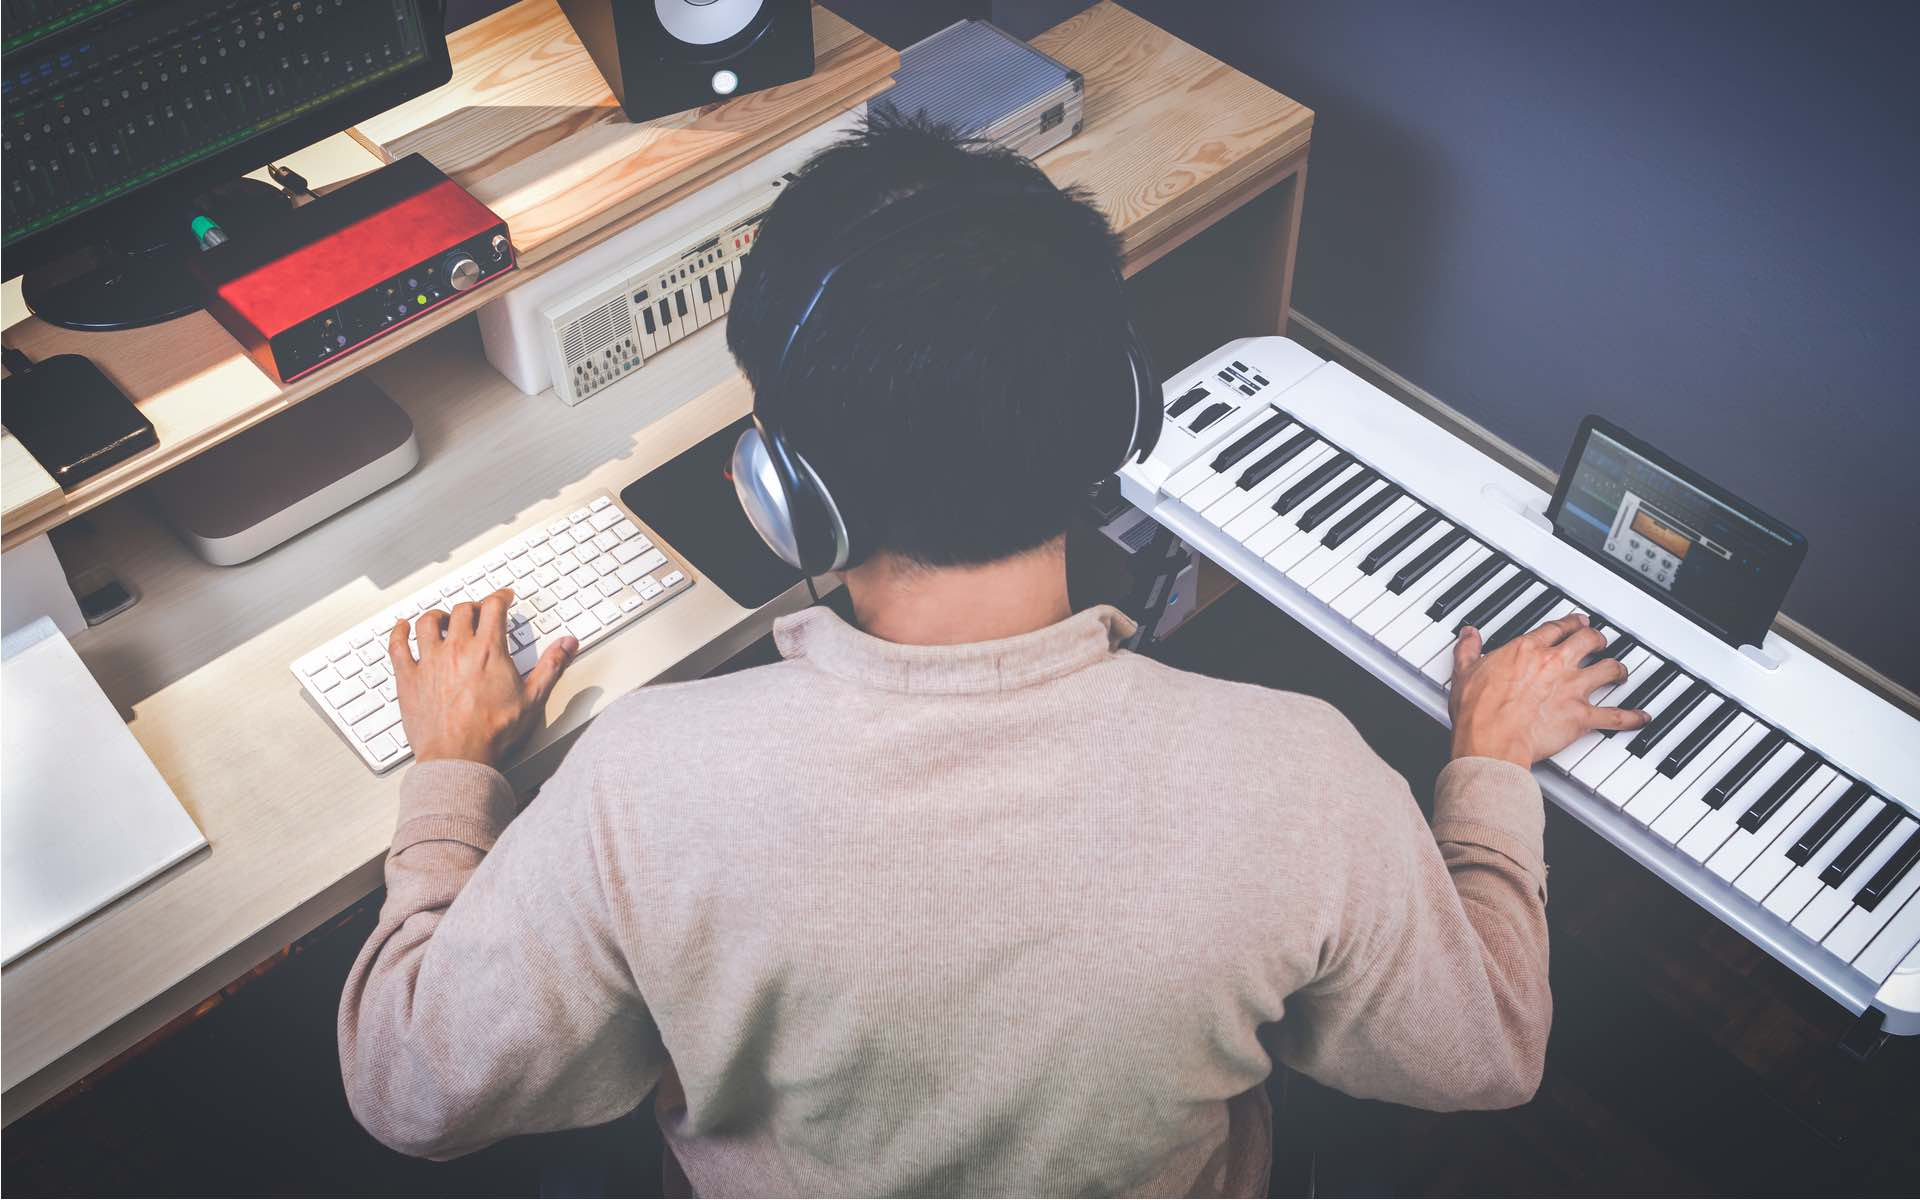 music composer working at their computer and keyboard